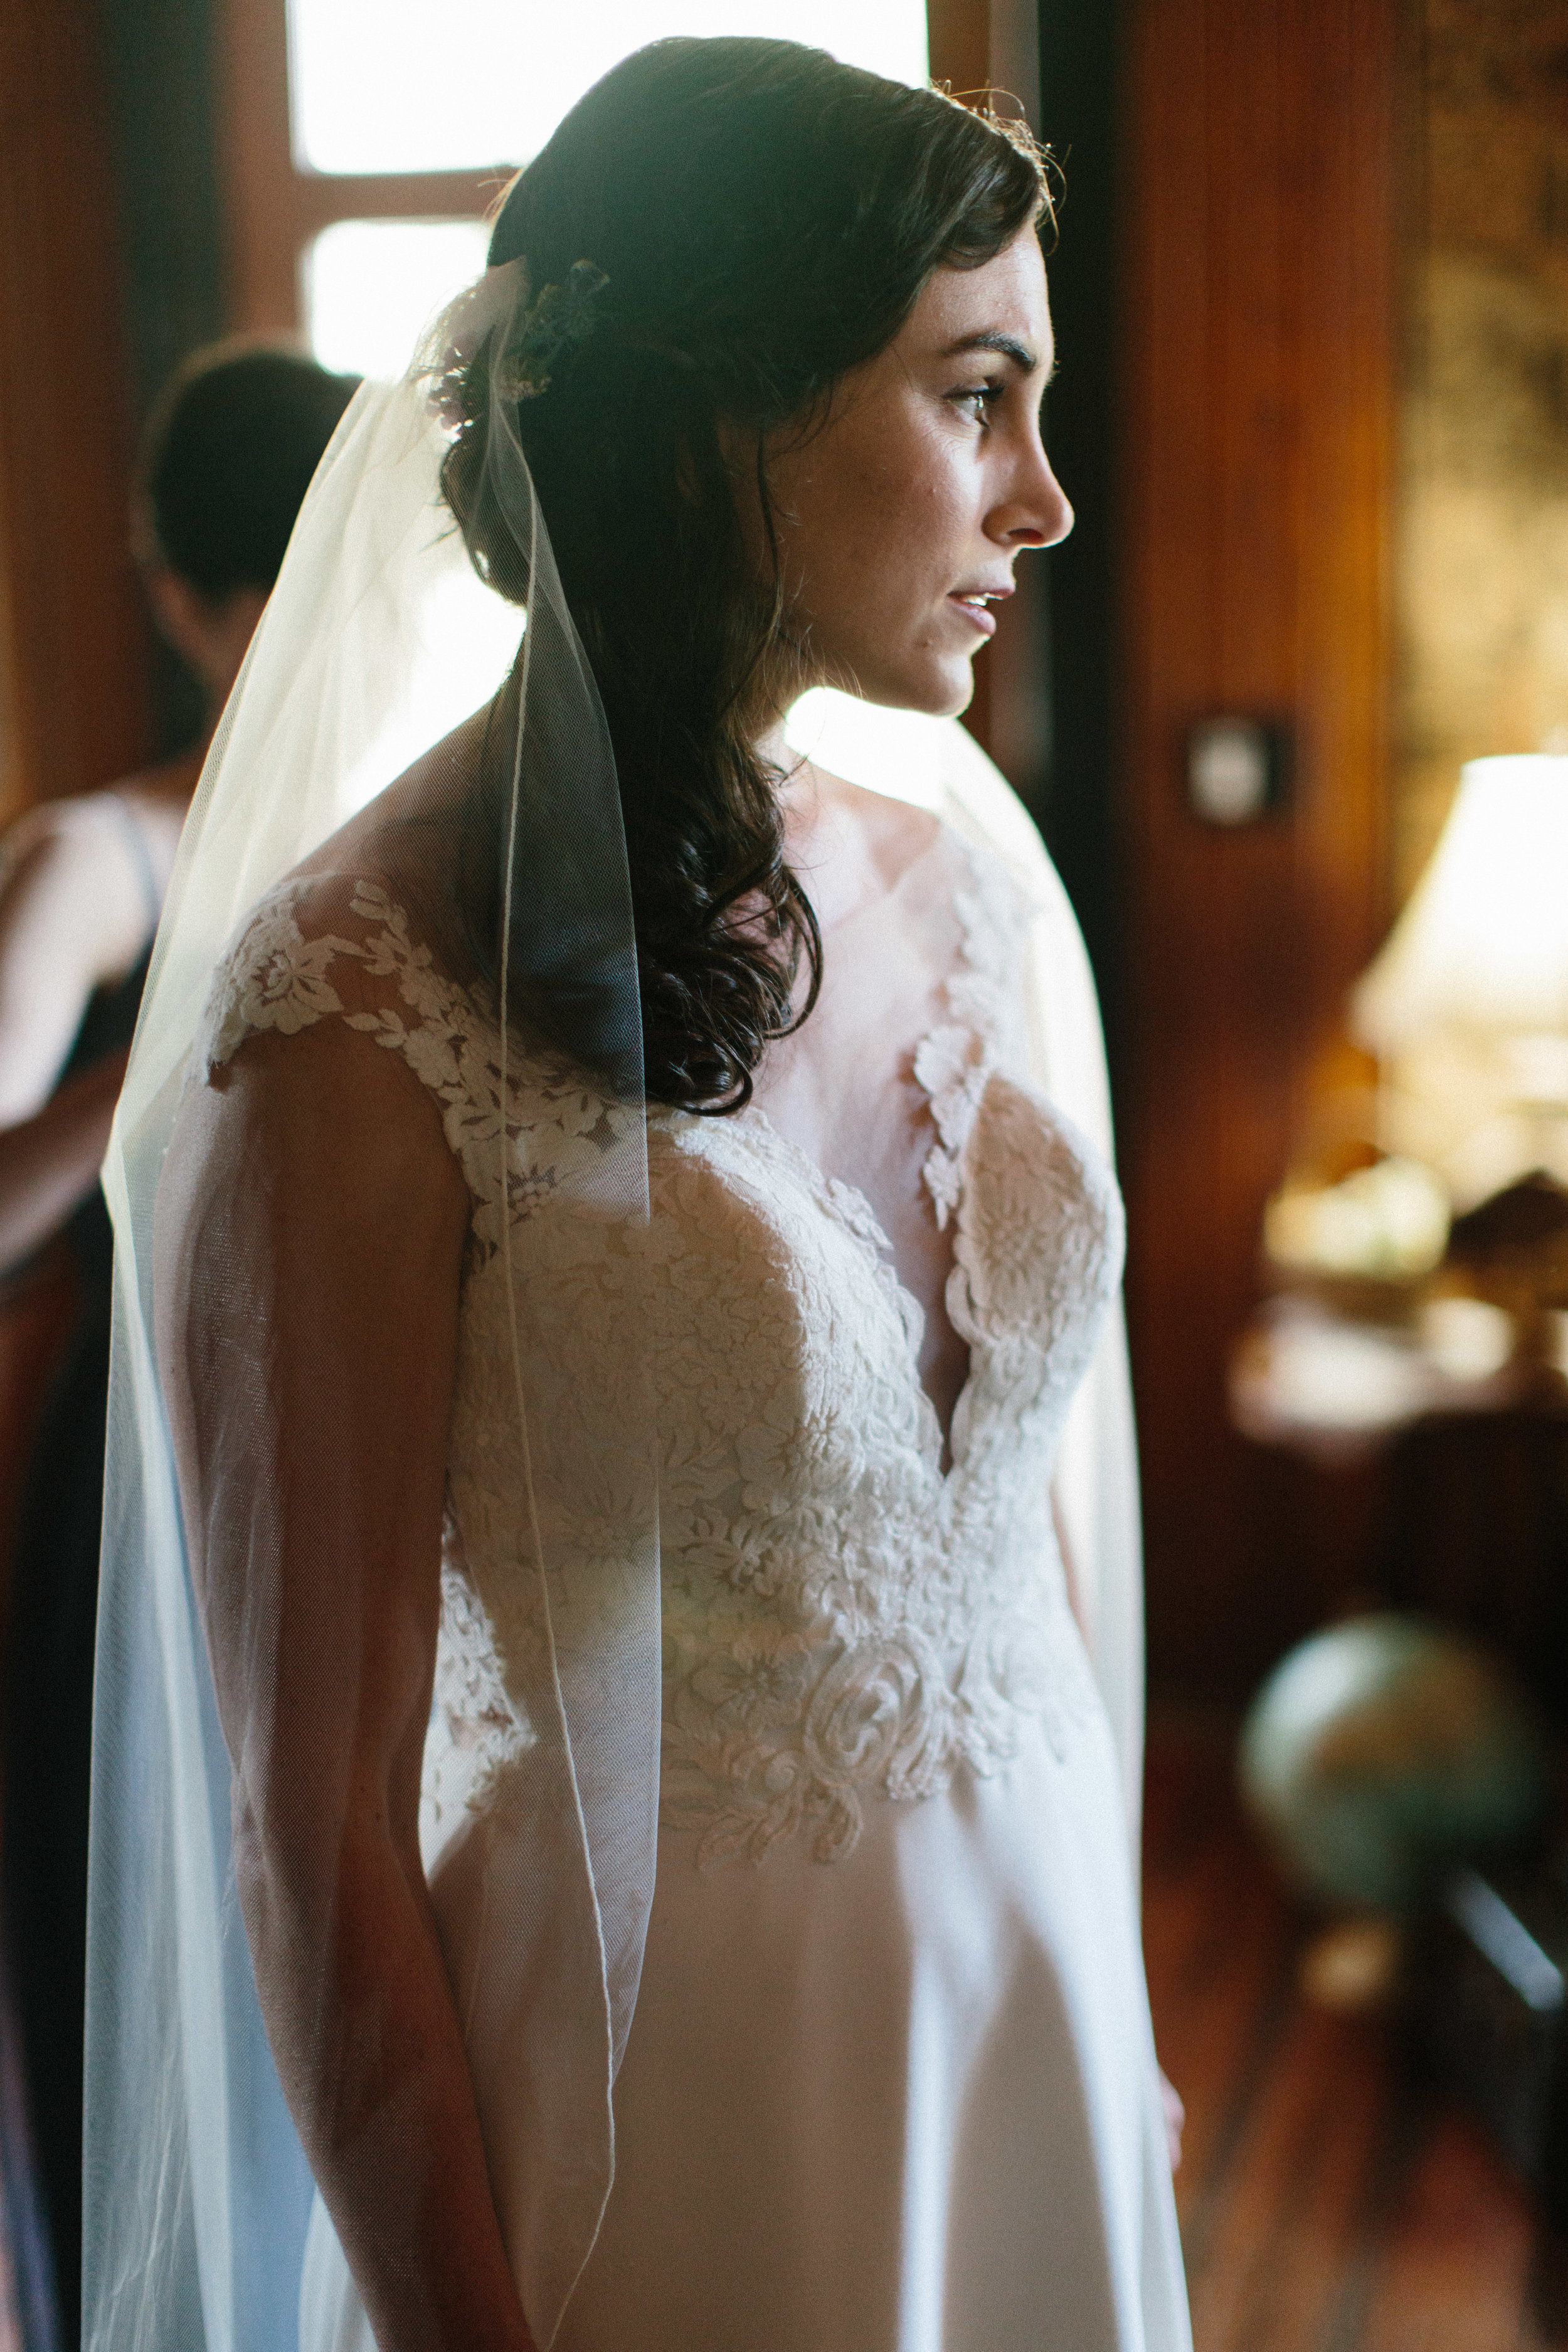 cleveland_georgia_mountain_laurel_farm_natural_classic_timeless_documentary_candid_wedding_emotional_photojournalism_river_west_1530.jpg